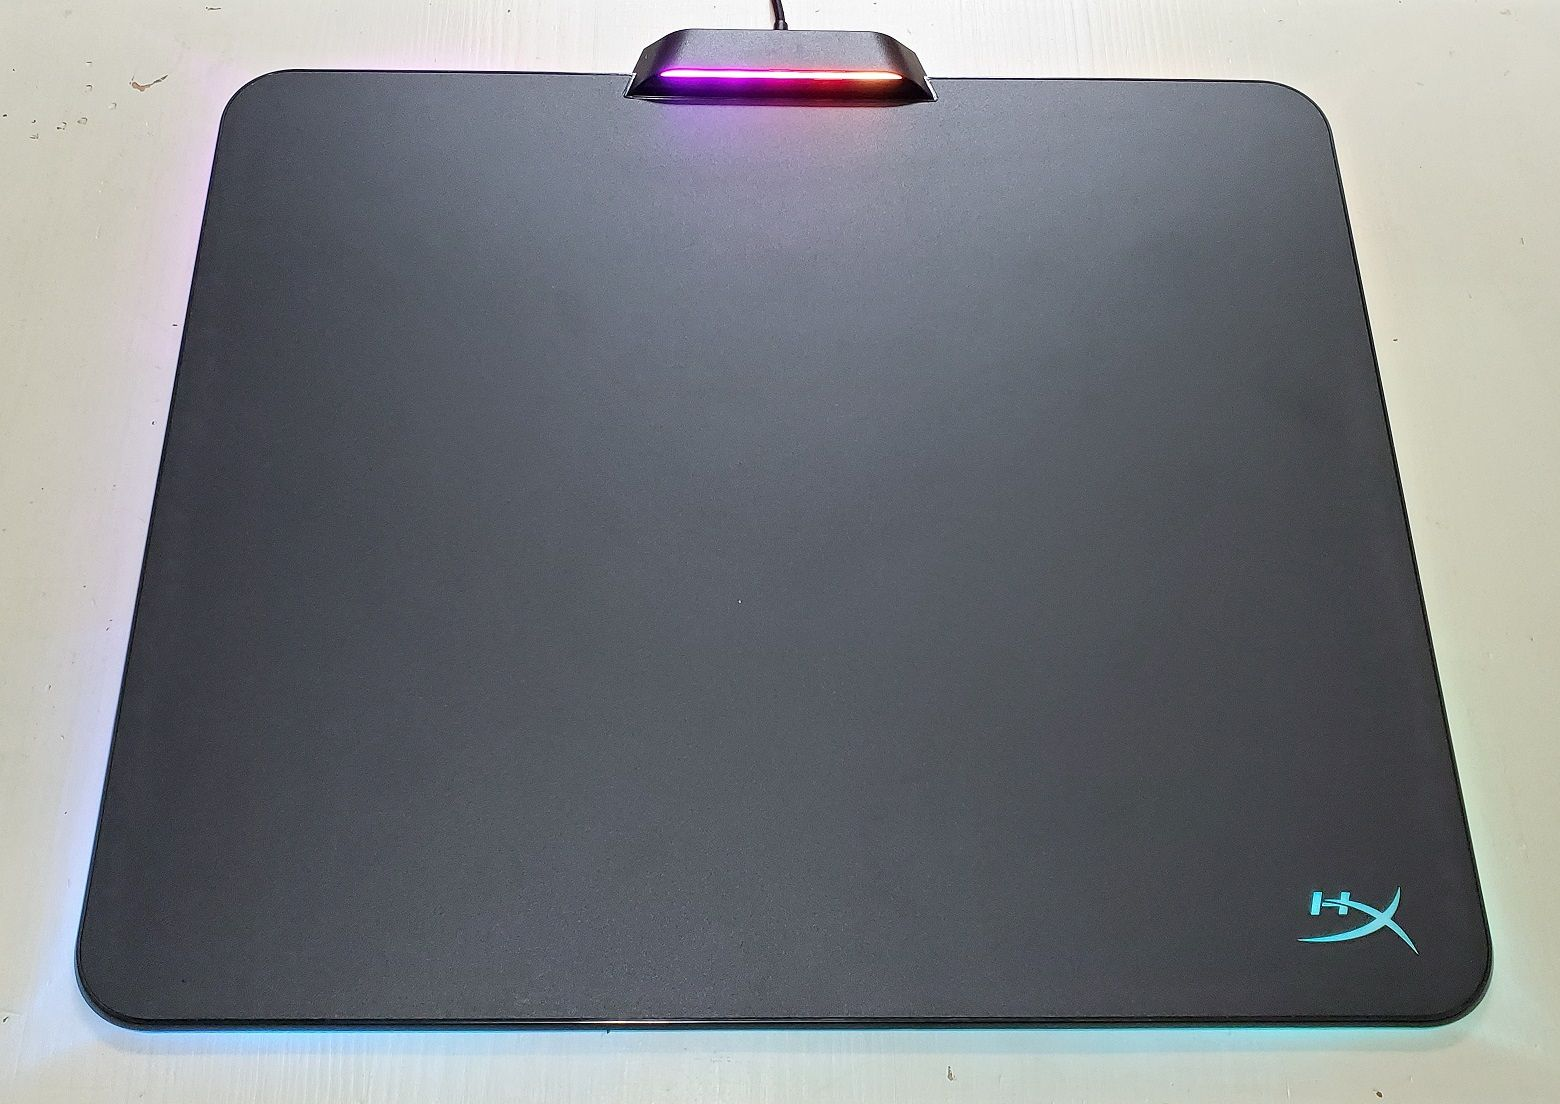 Hyperx fury ultra rgb mouse pad unboxing and review in